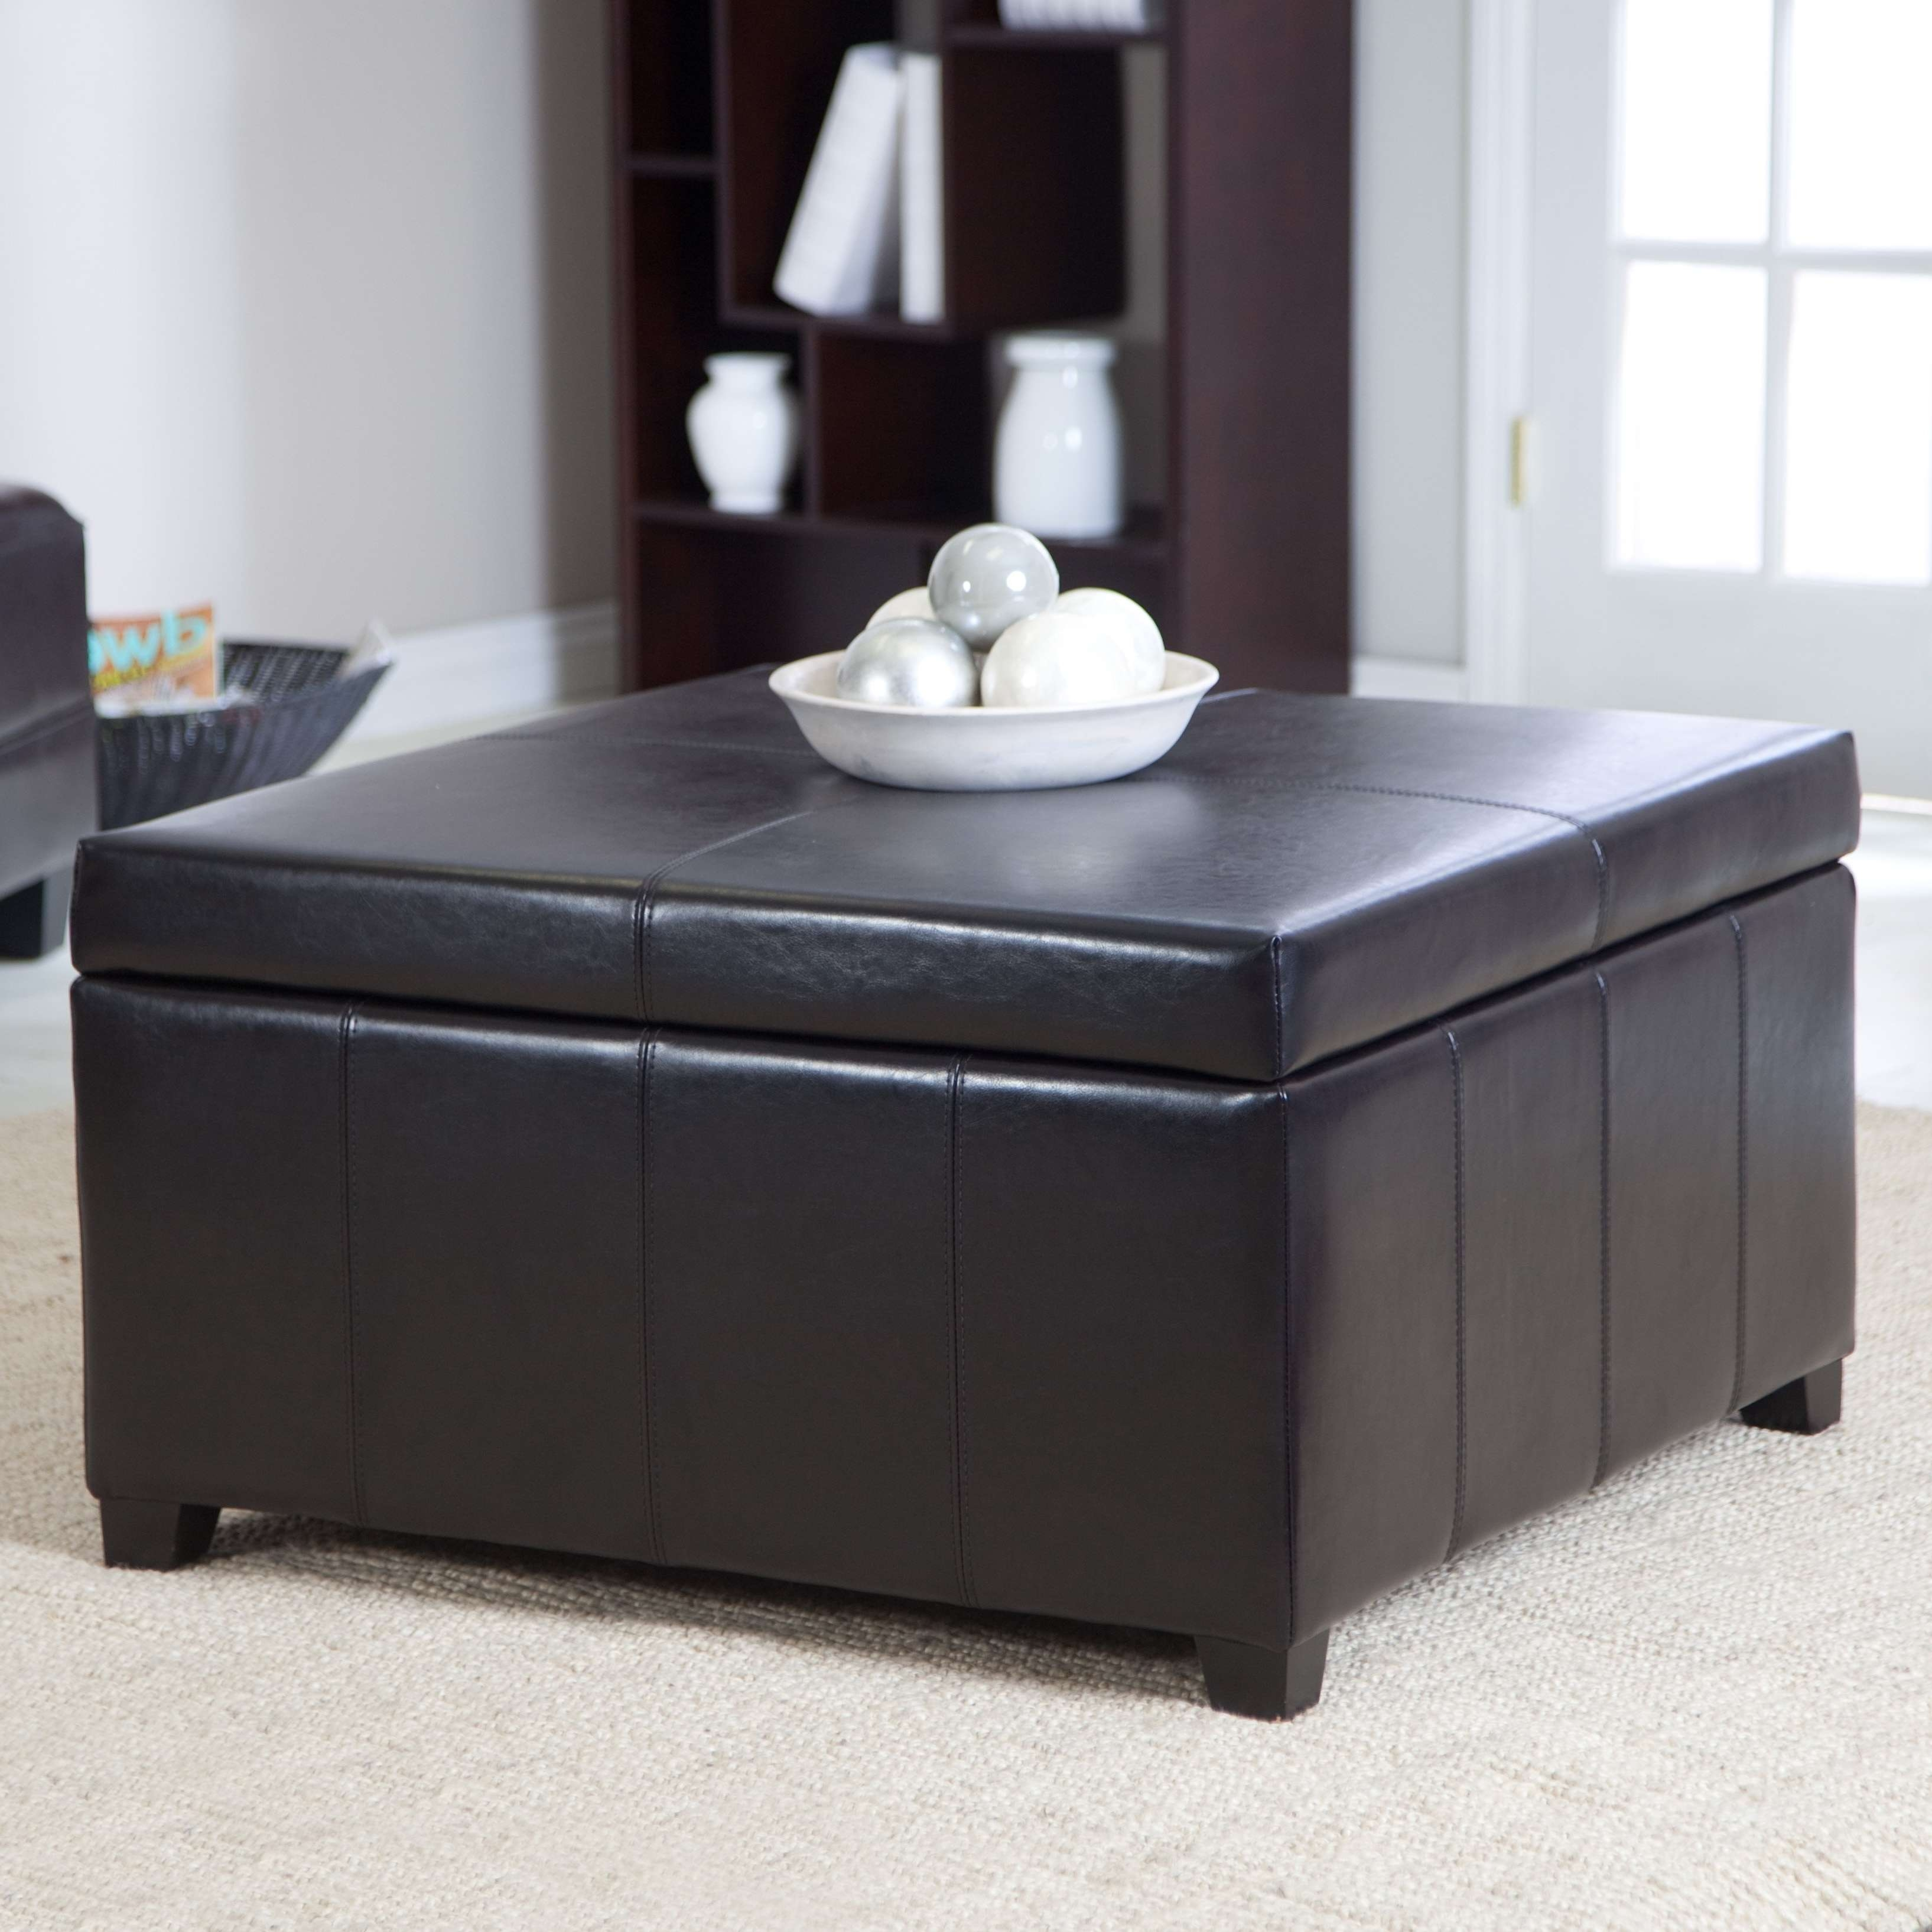 Most Current Brown Leather Ottoman Coffee Tables With Storages Regarding Cube Black Leather Ottoman With Storage Placed On The White Rug Of (View 10 of 20)